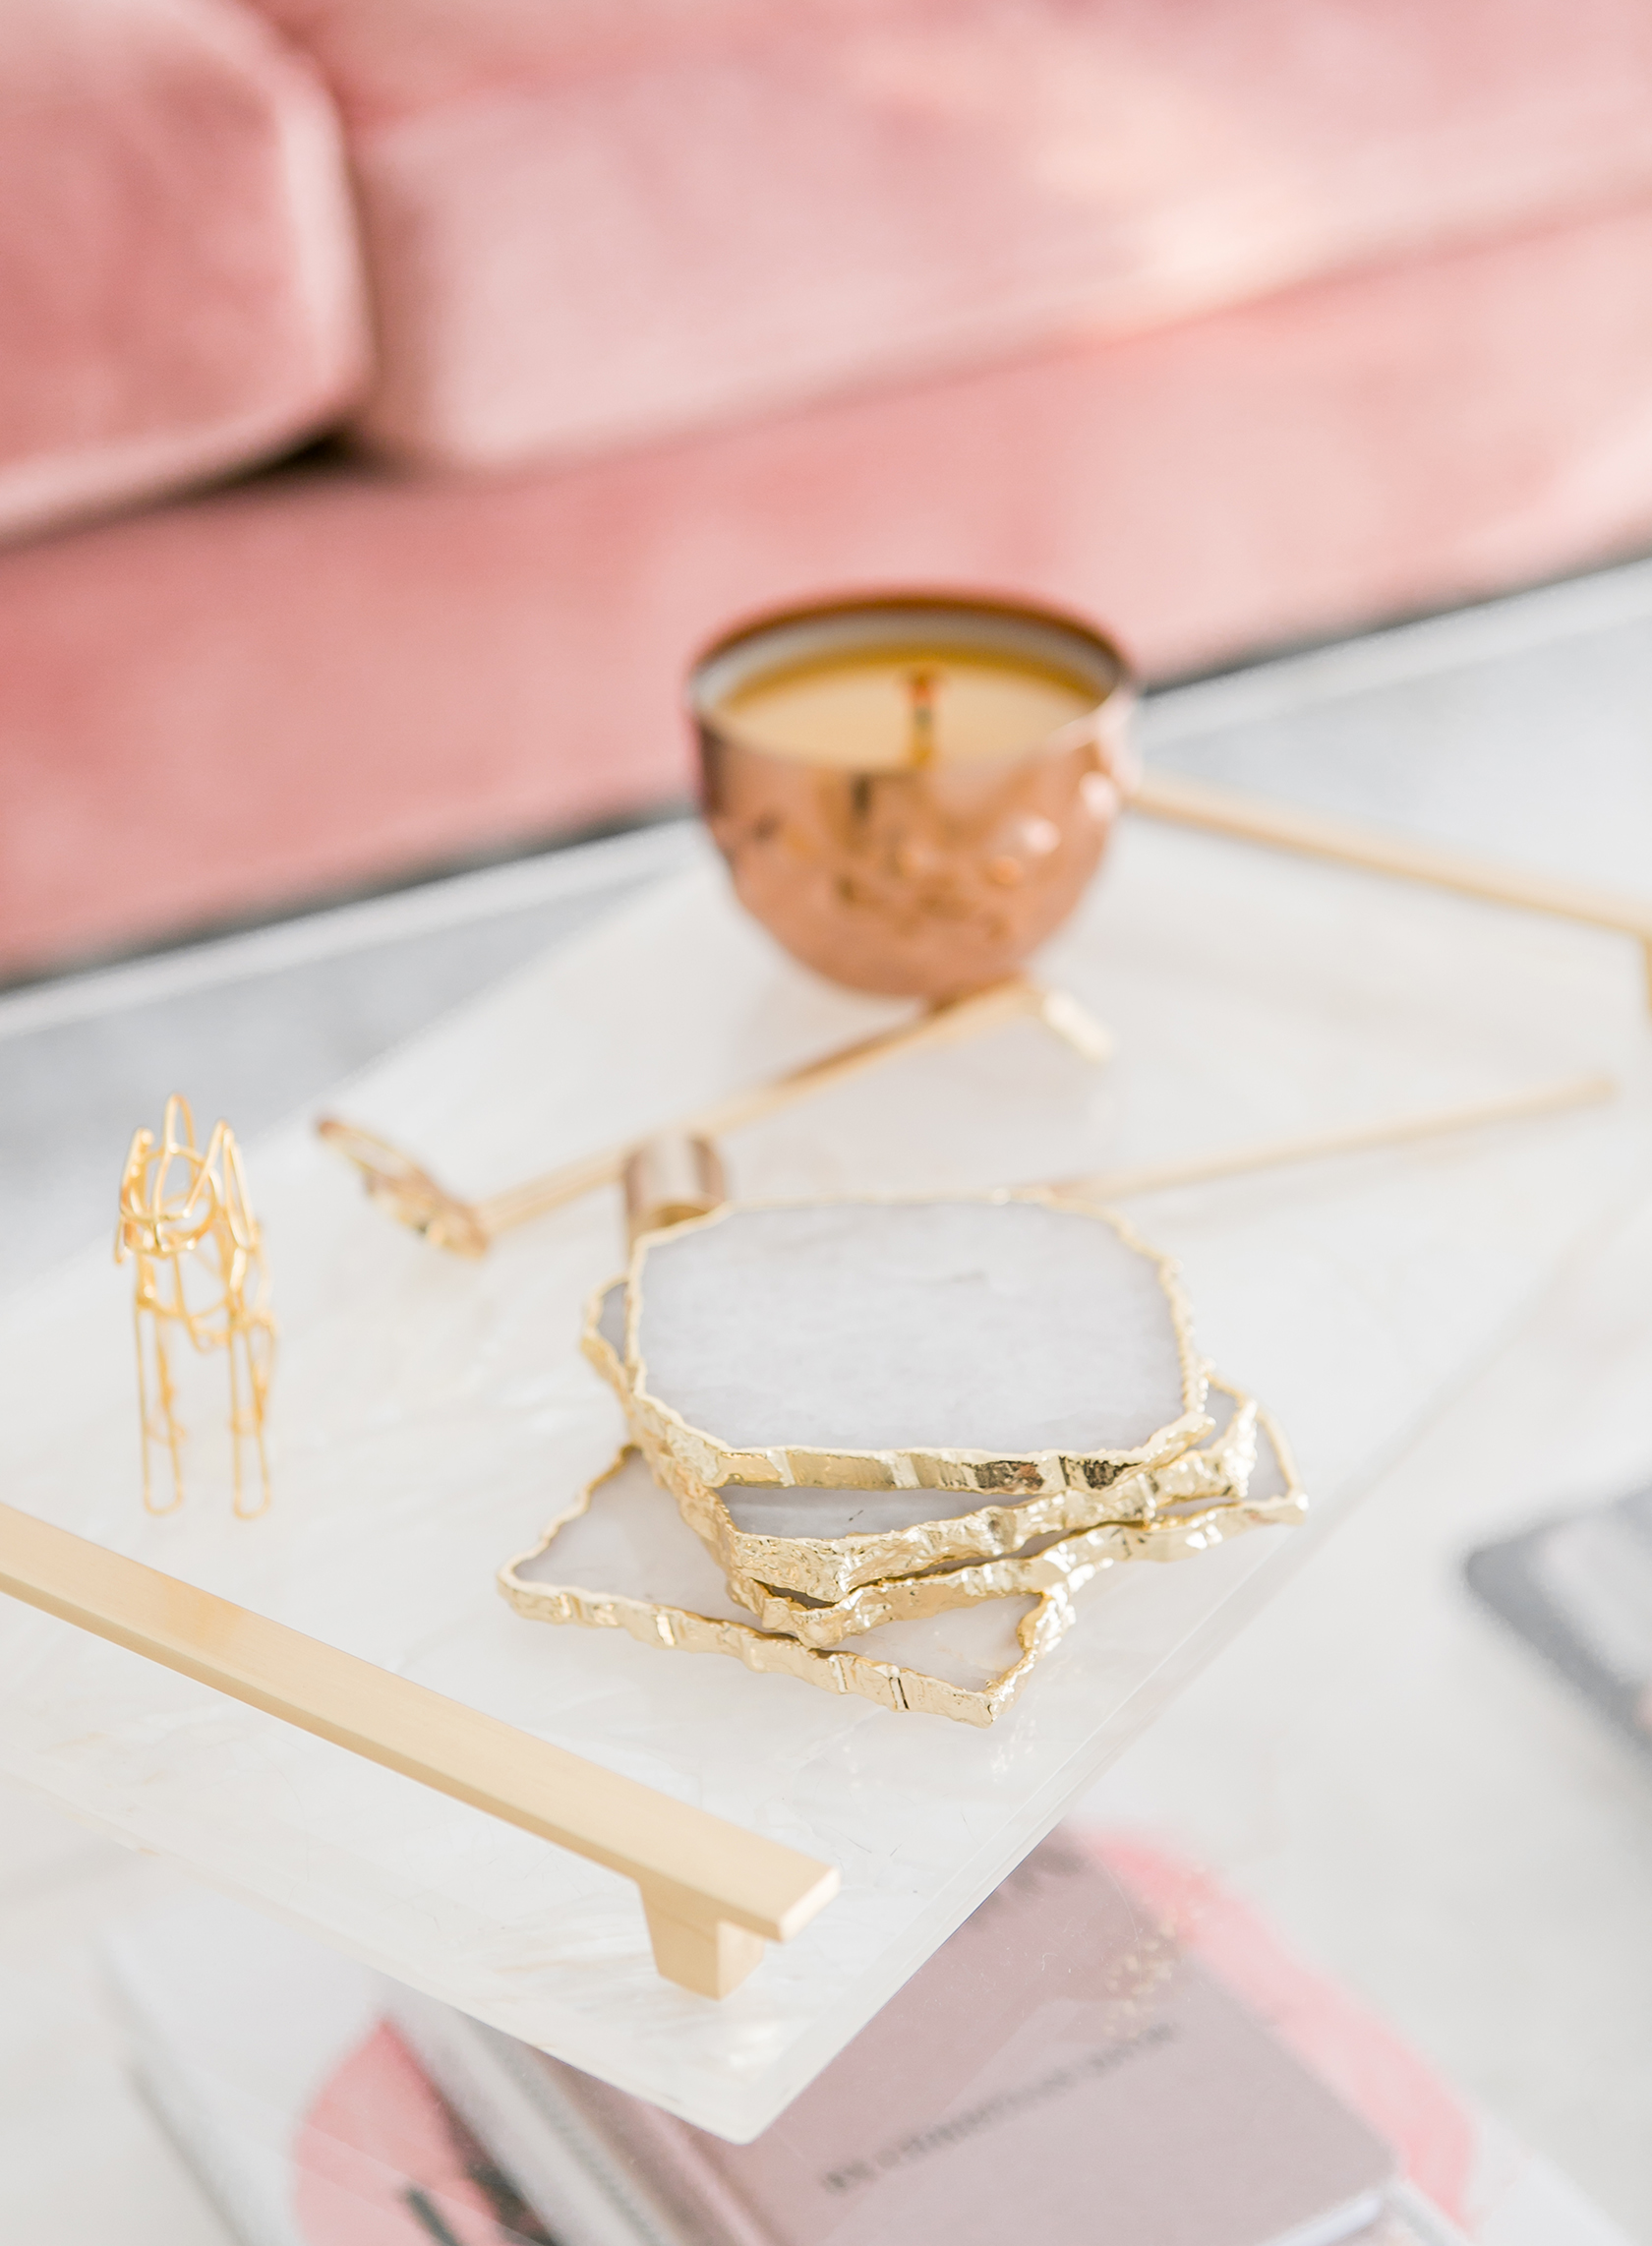 Marble tray with gold candle and gold coasters vignette via Sydne Summer